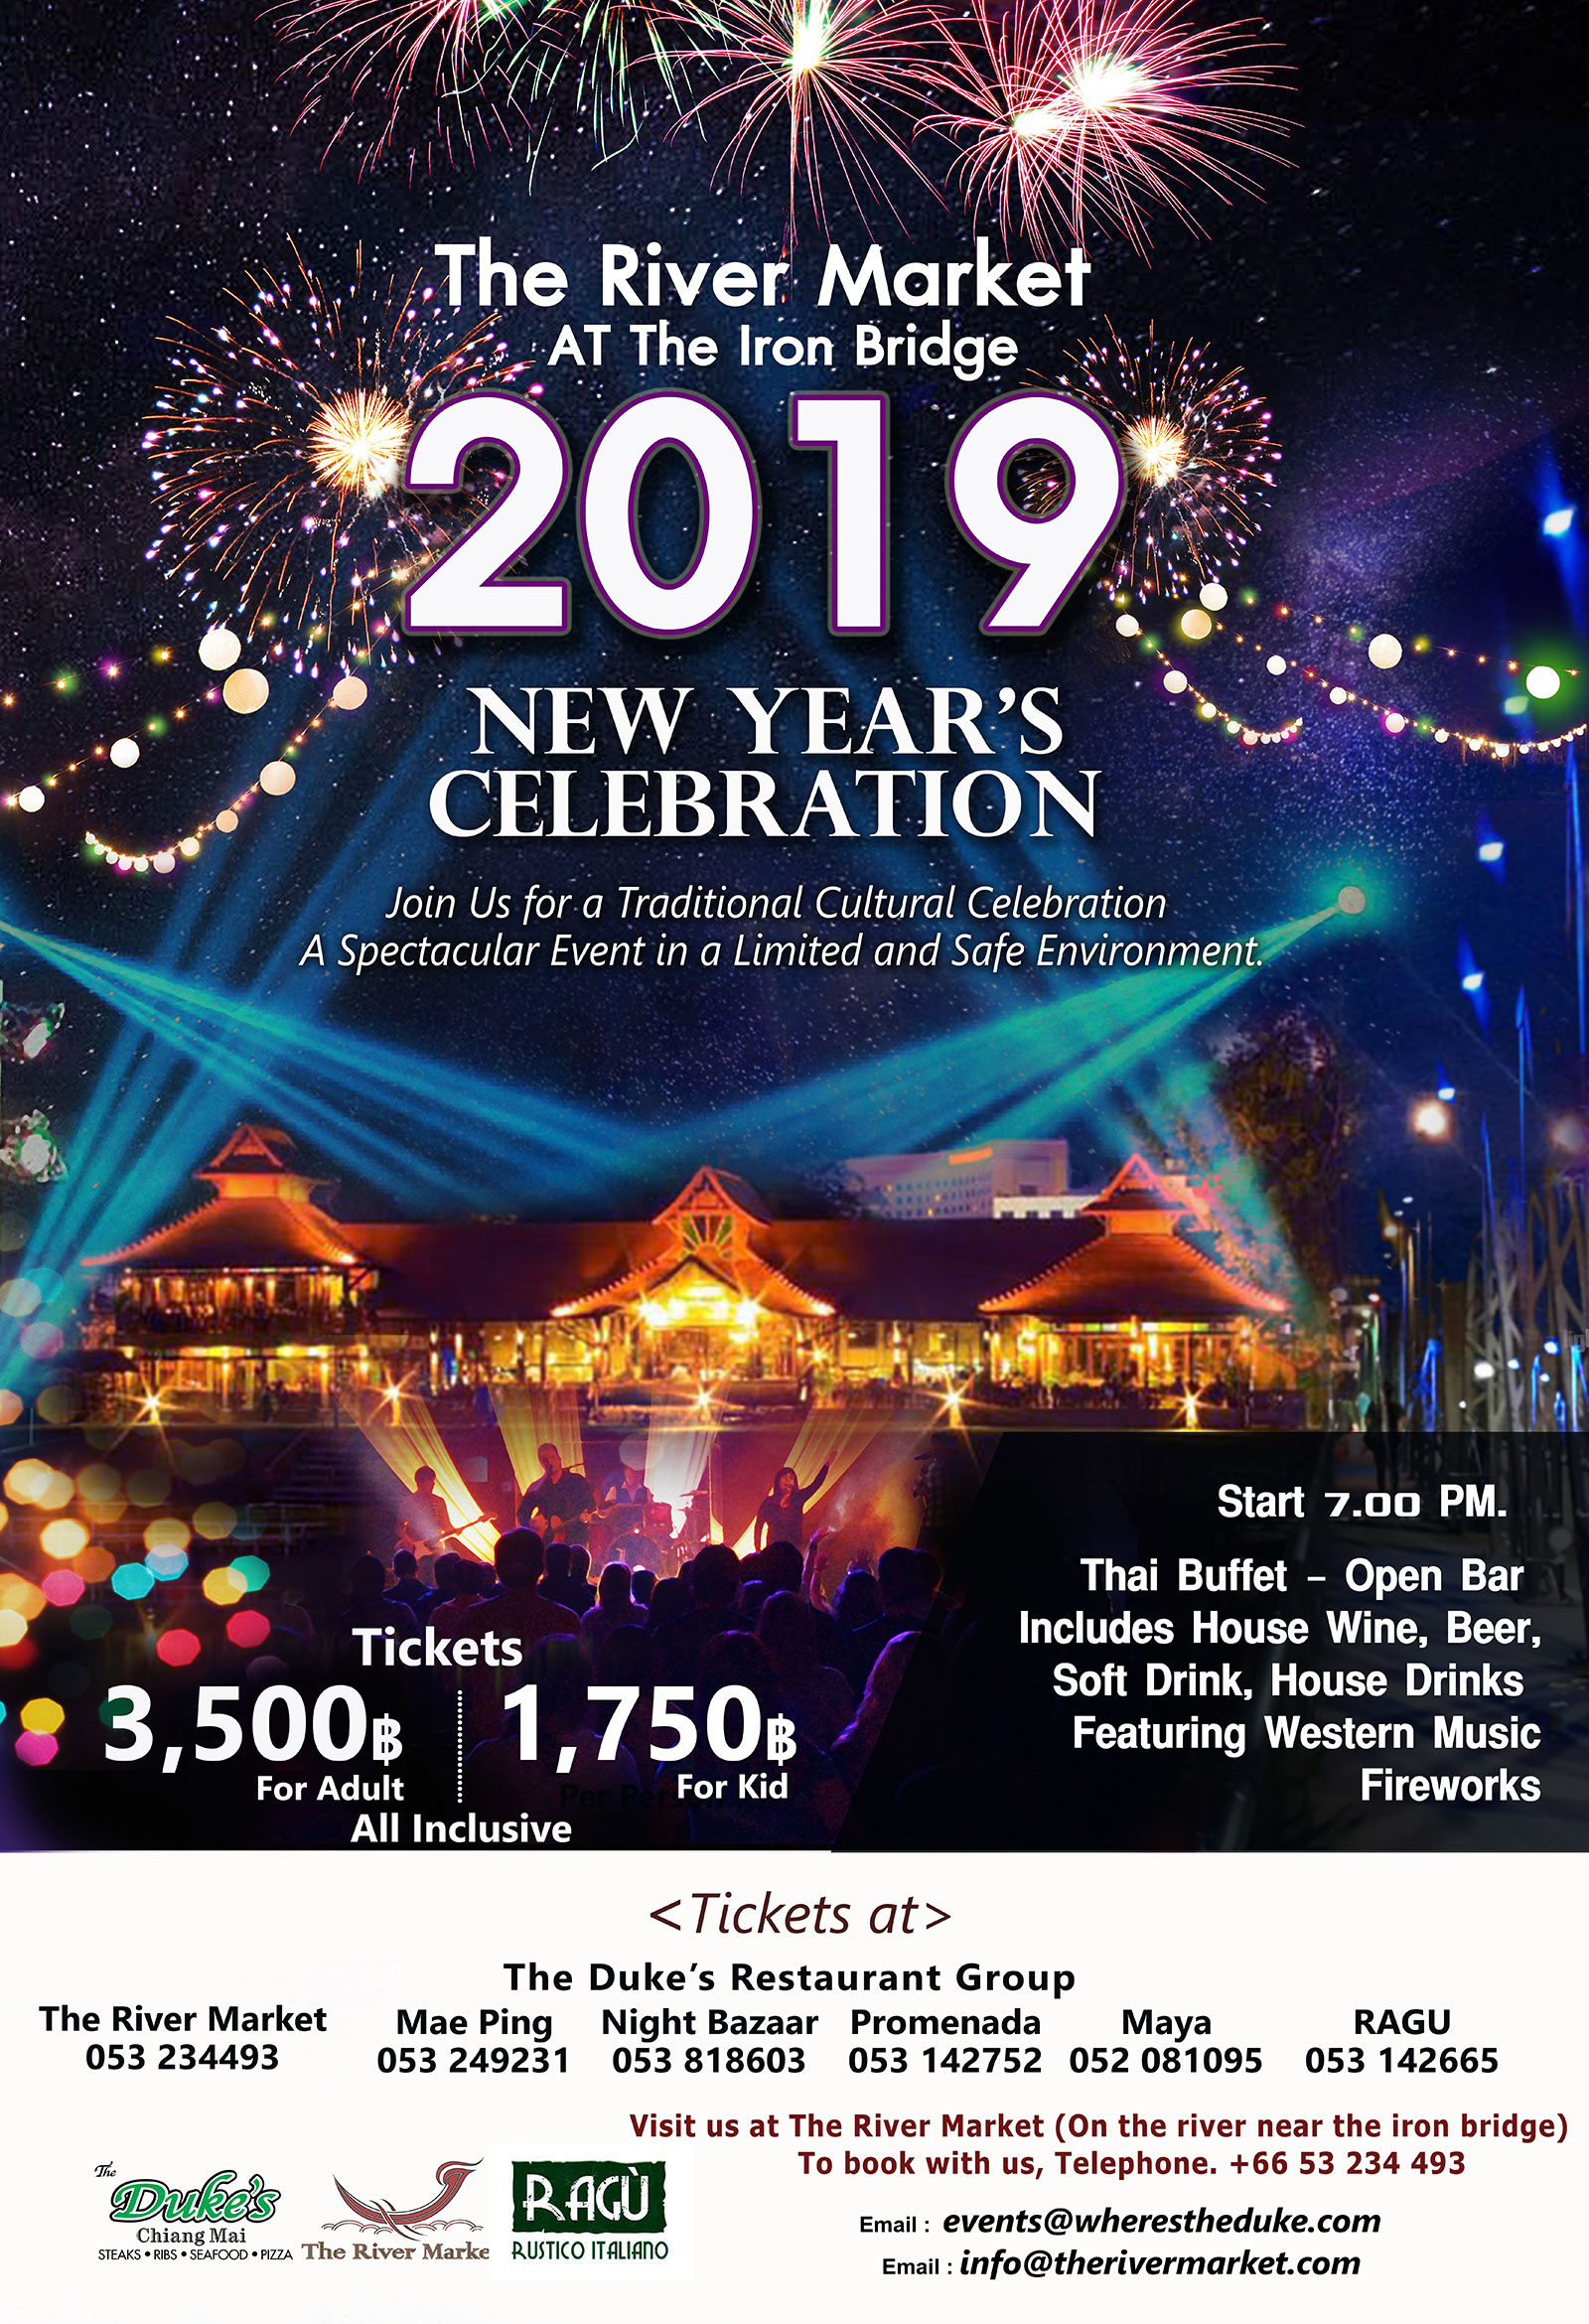 December 31 – New Year's Celebration at The River Market